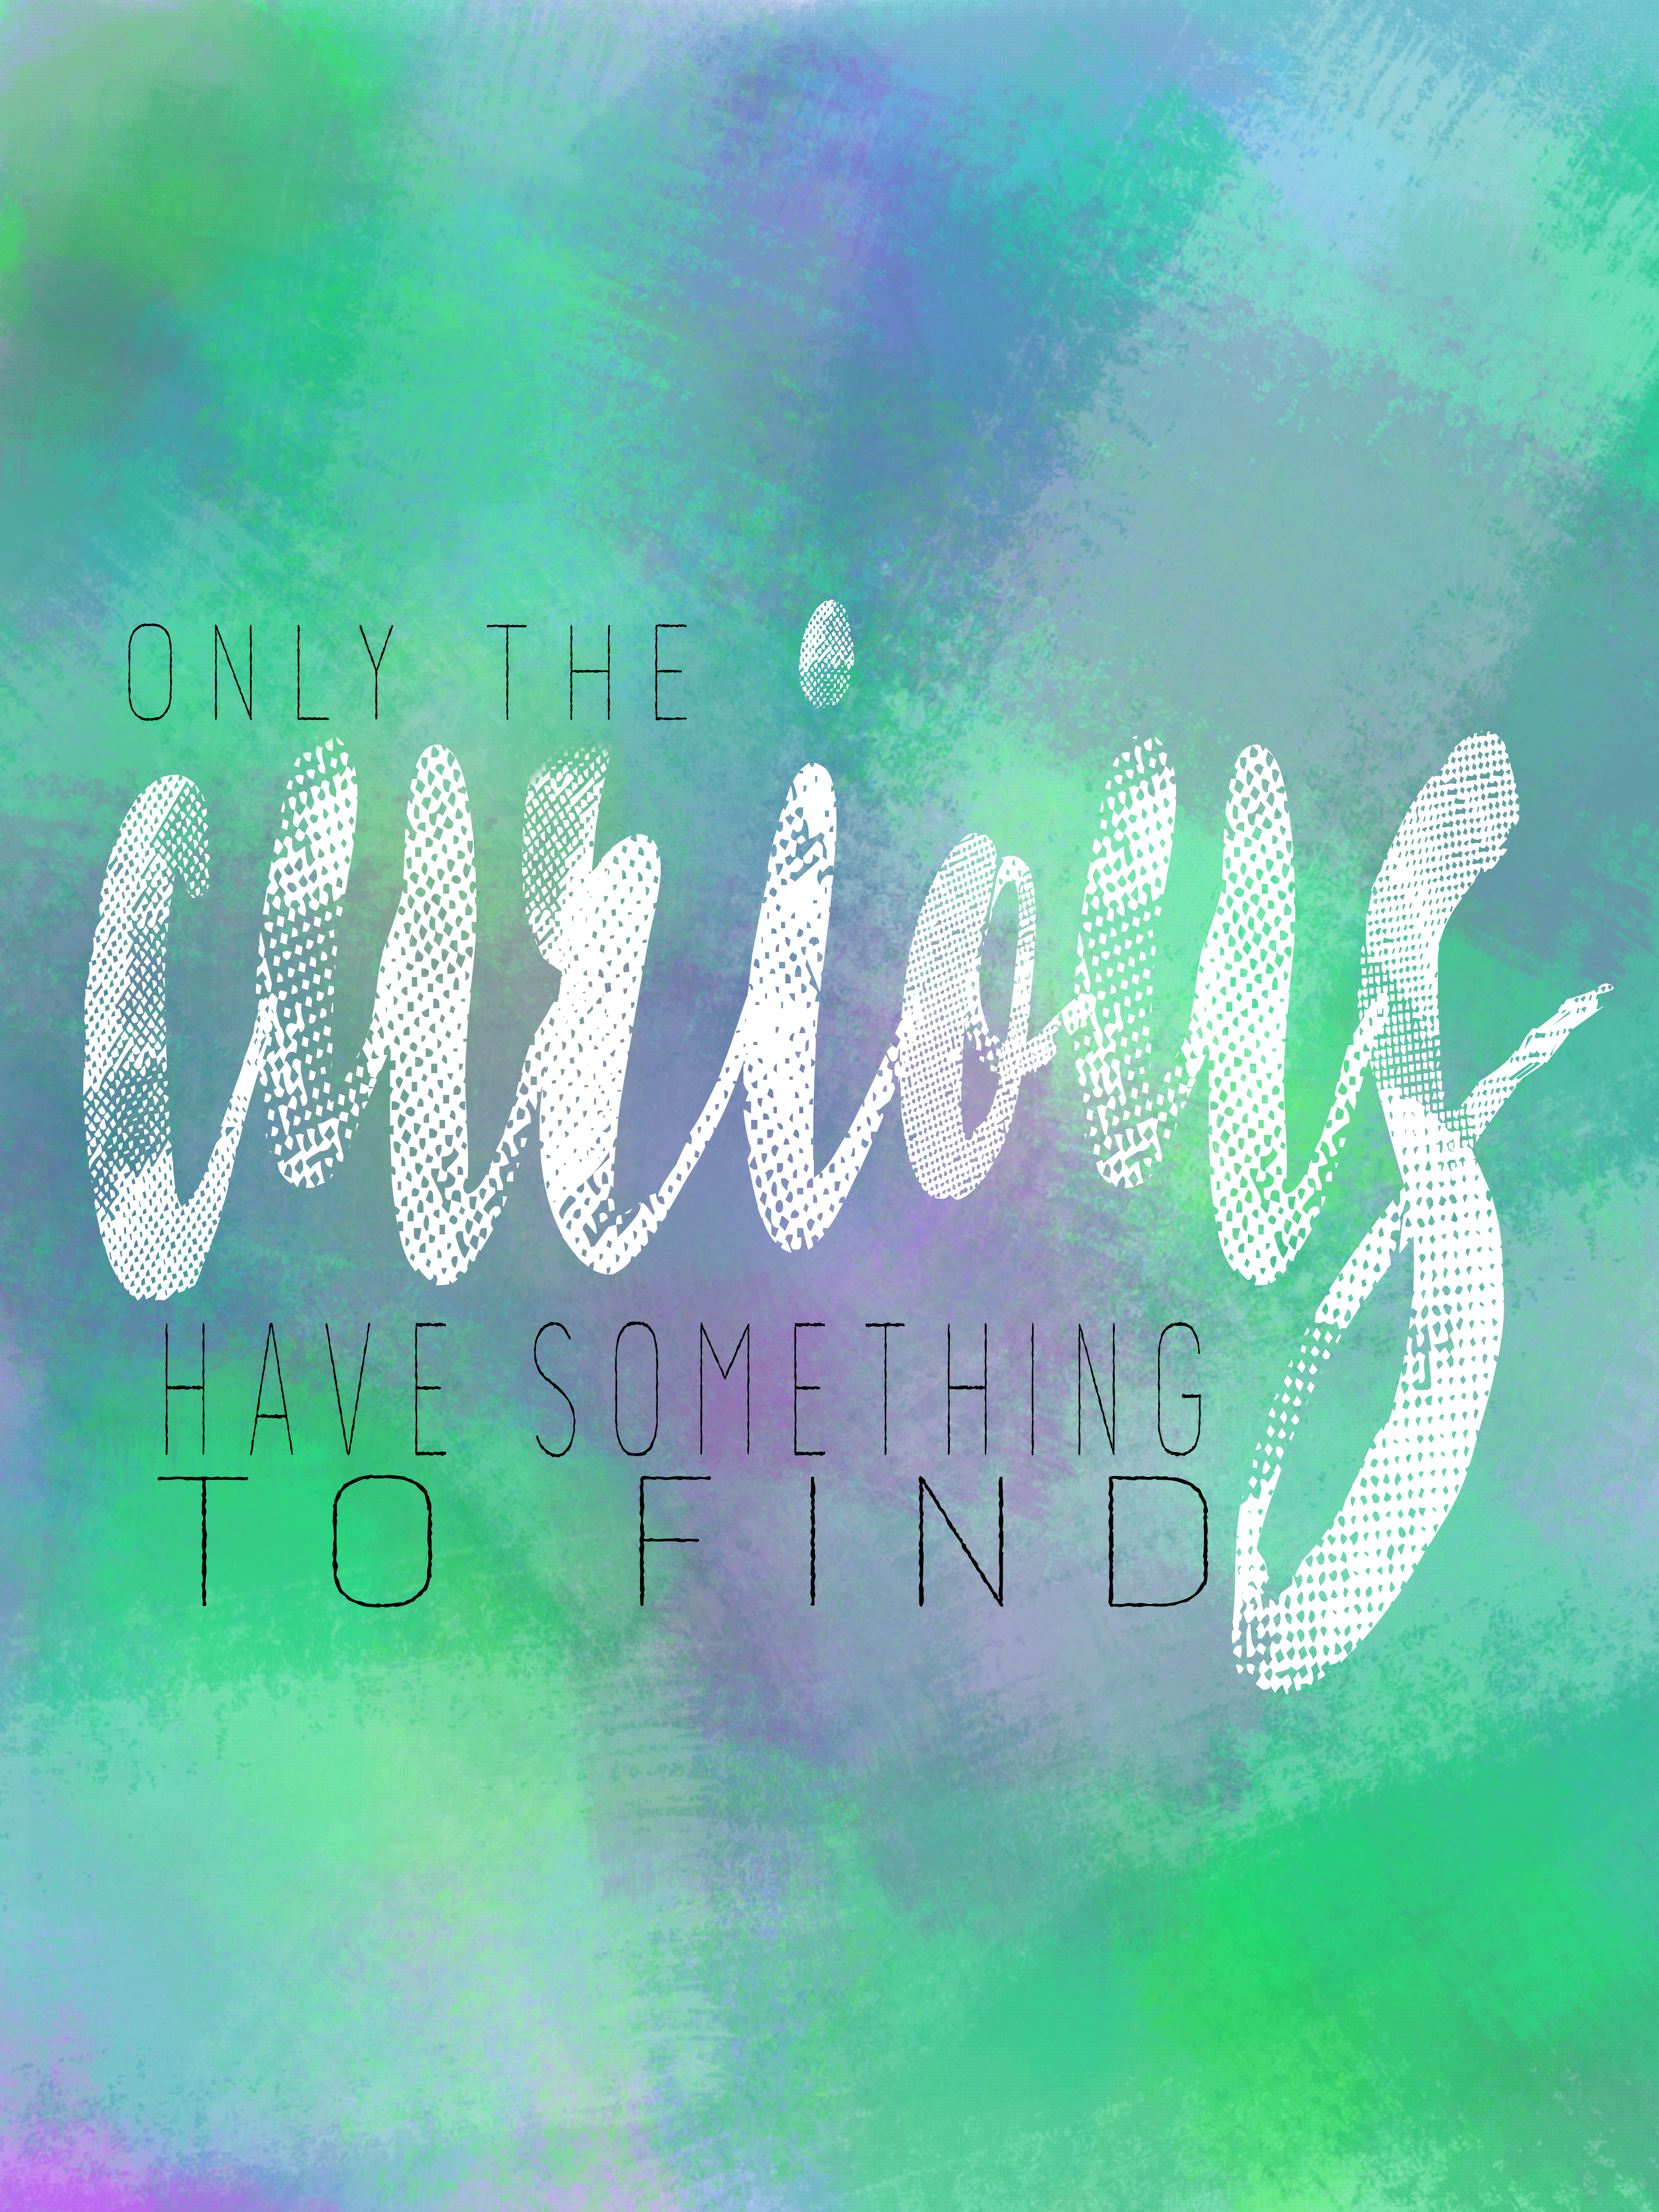 Only The Curious